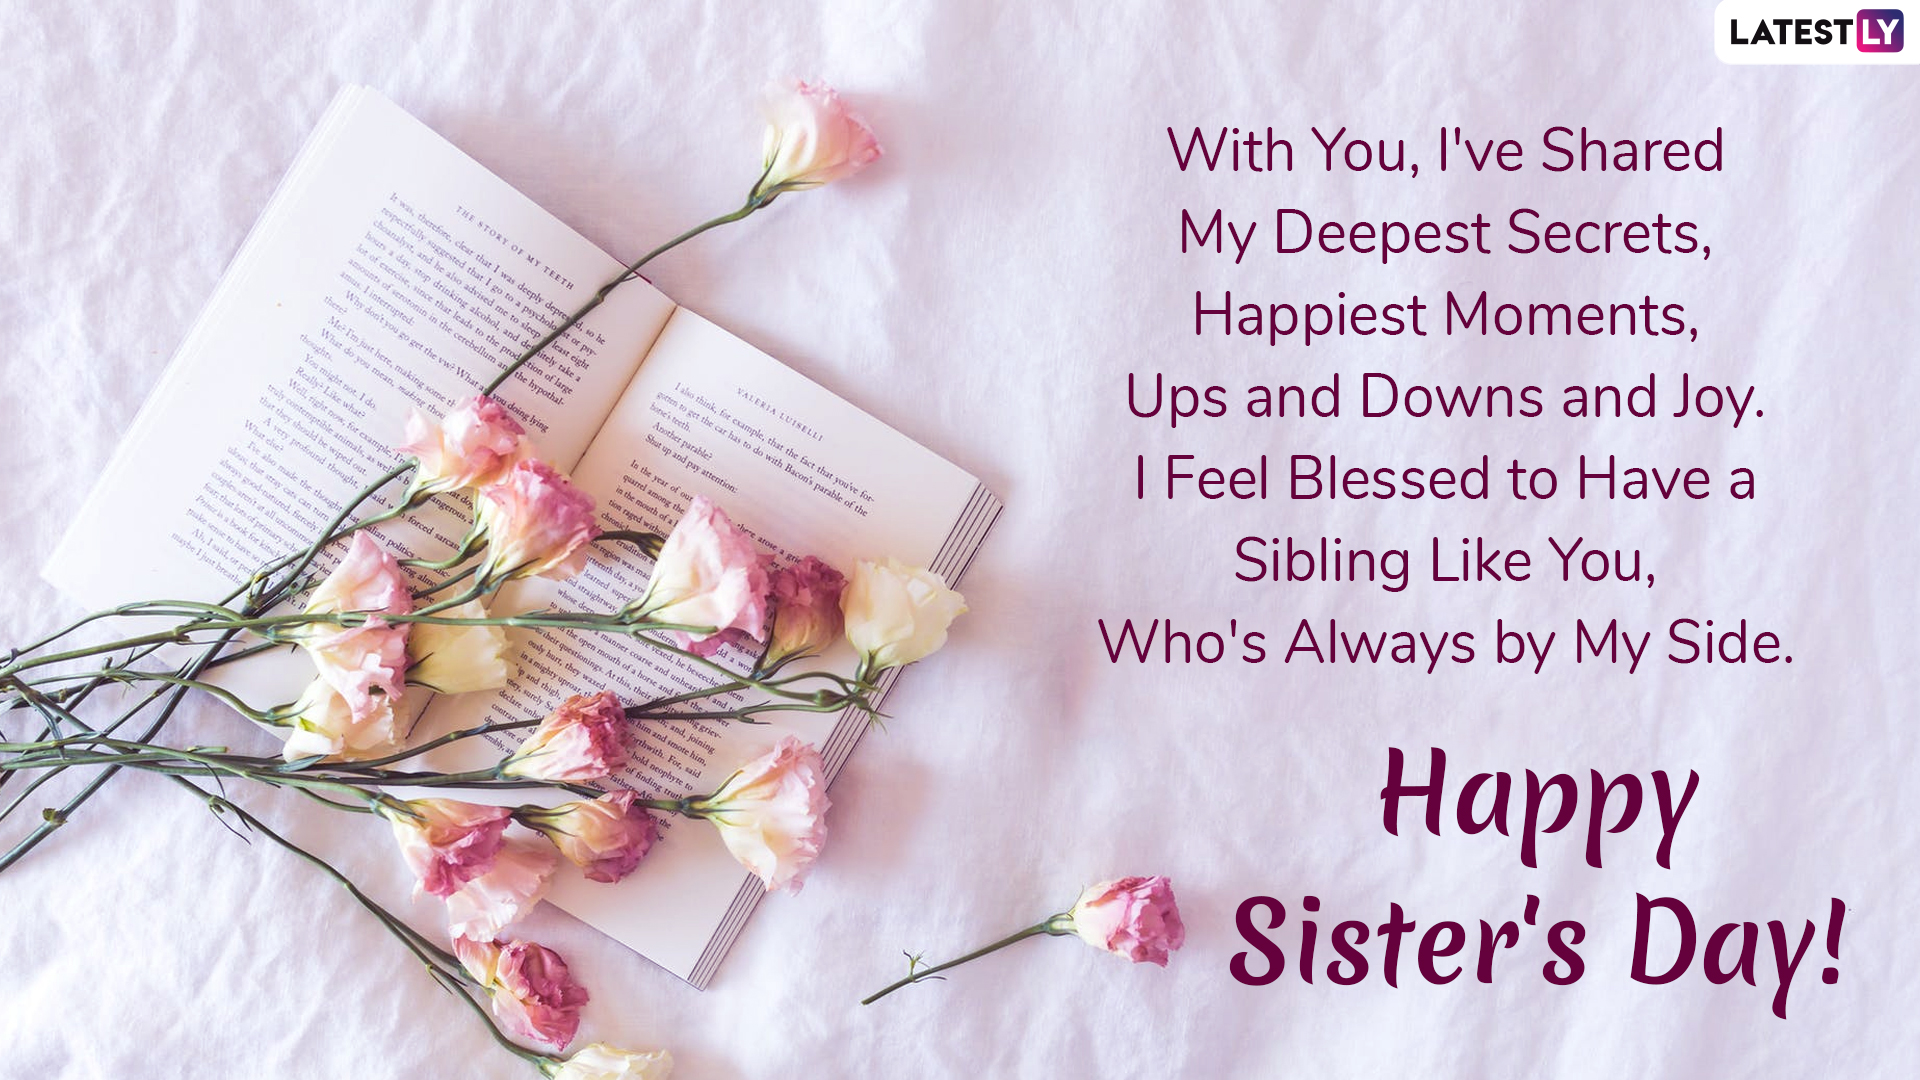 National Sister's Day: Quotes and How to Celebrate in 2019  |Sisterhood Day